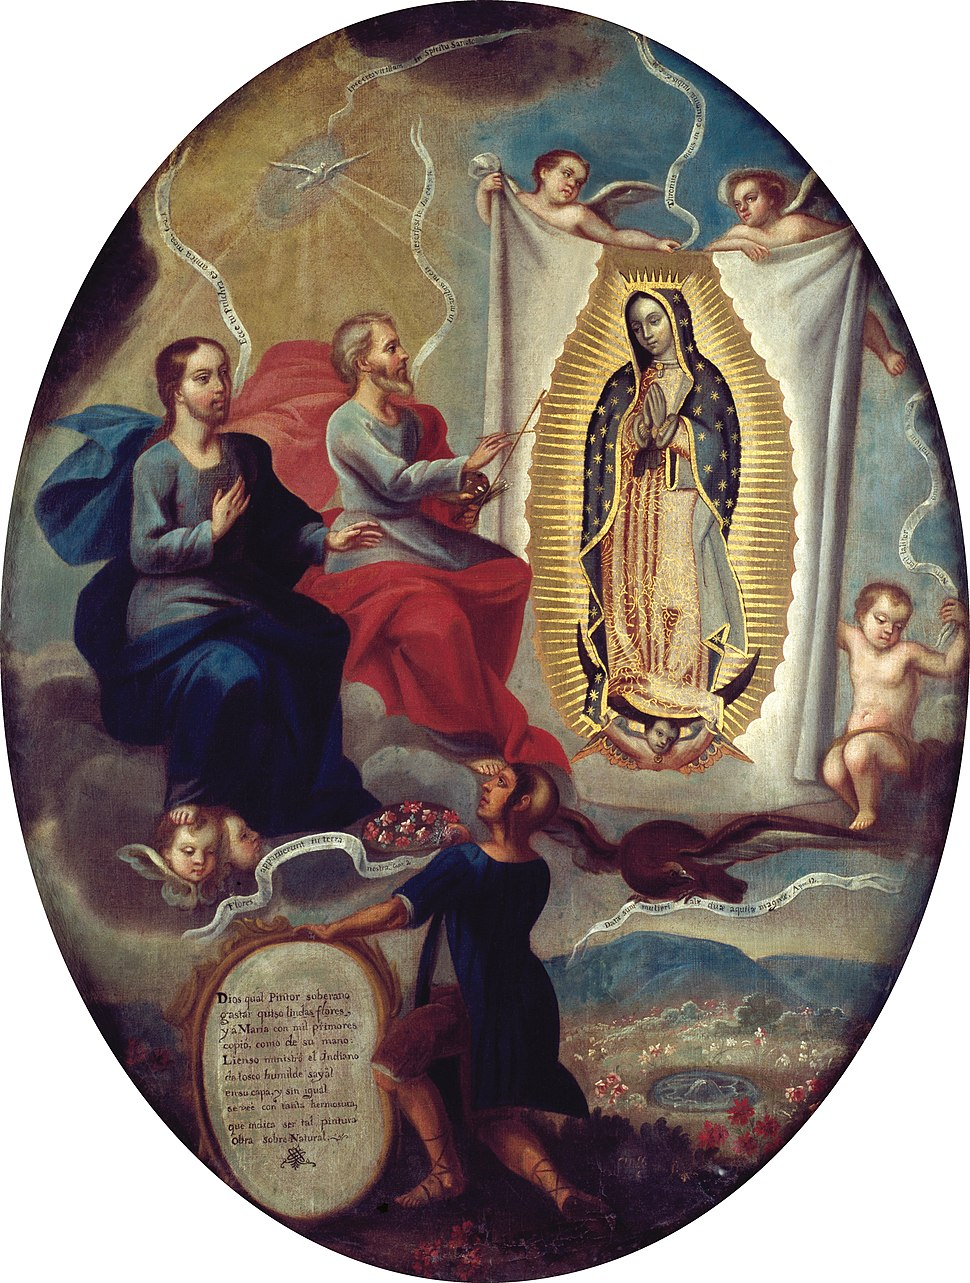 Attributed to Joaquín Villegas - The Eternal Father Painting the Virgin of Guadalupe - Google Art Project